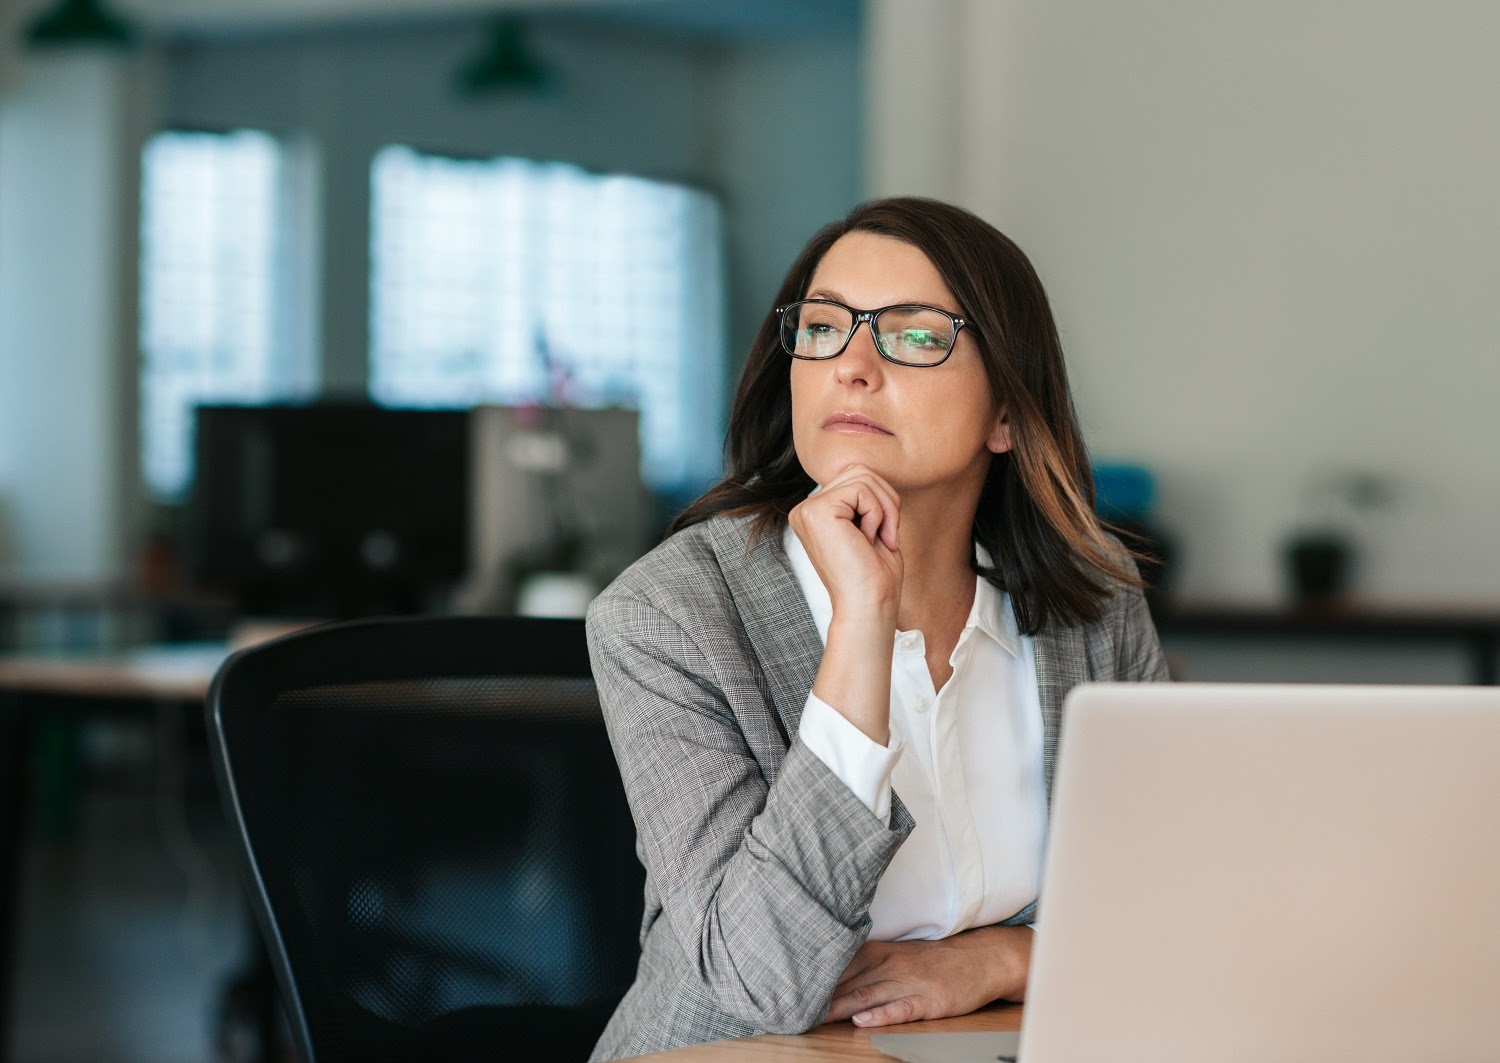 Competency-based interview: A business woman looking contemplative